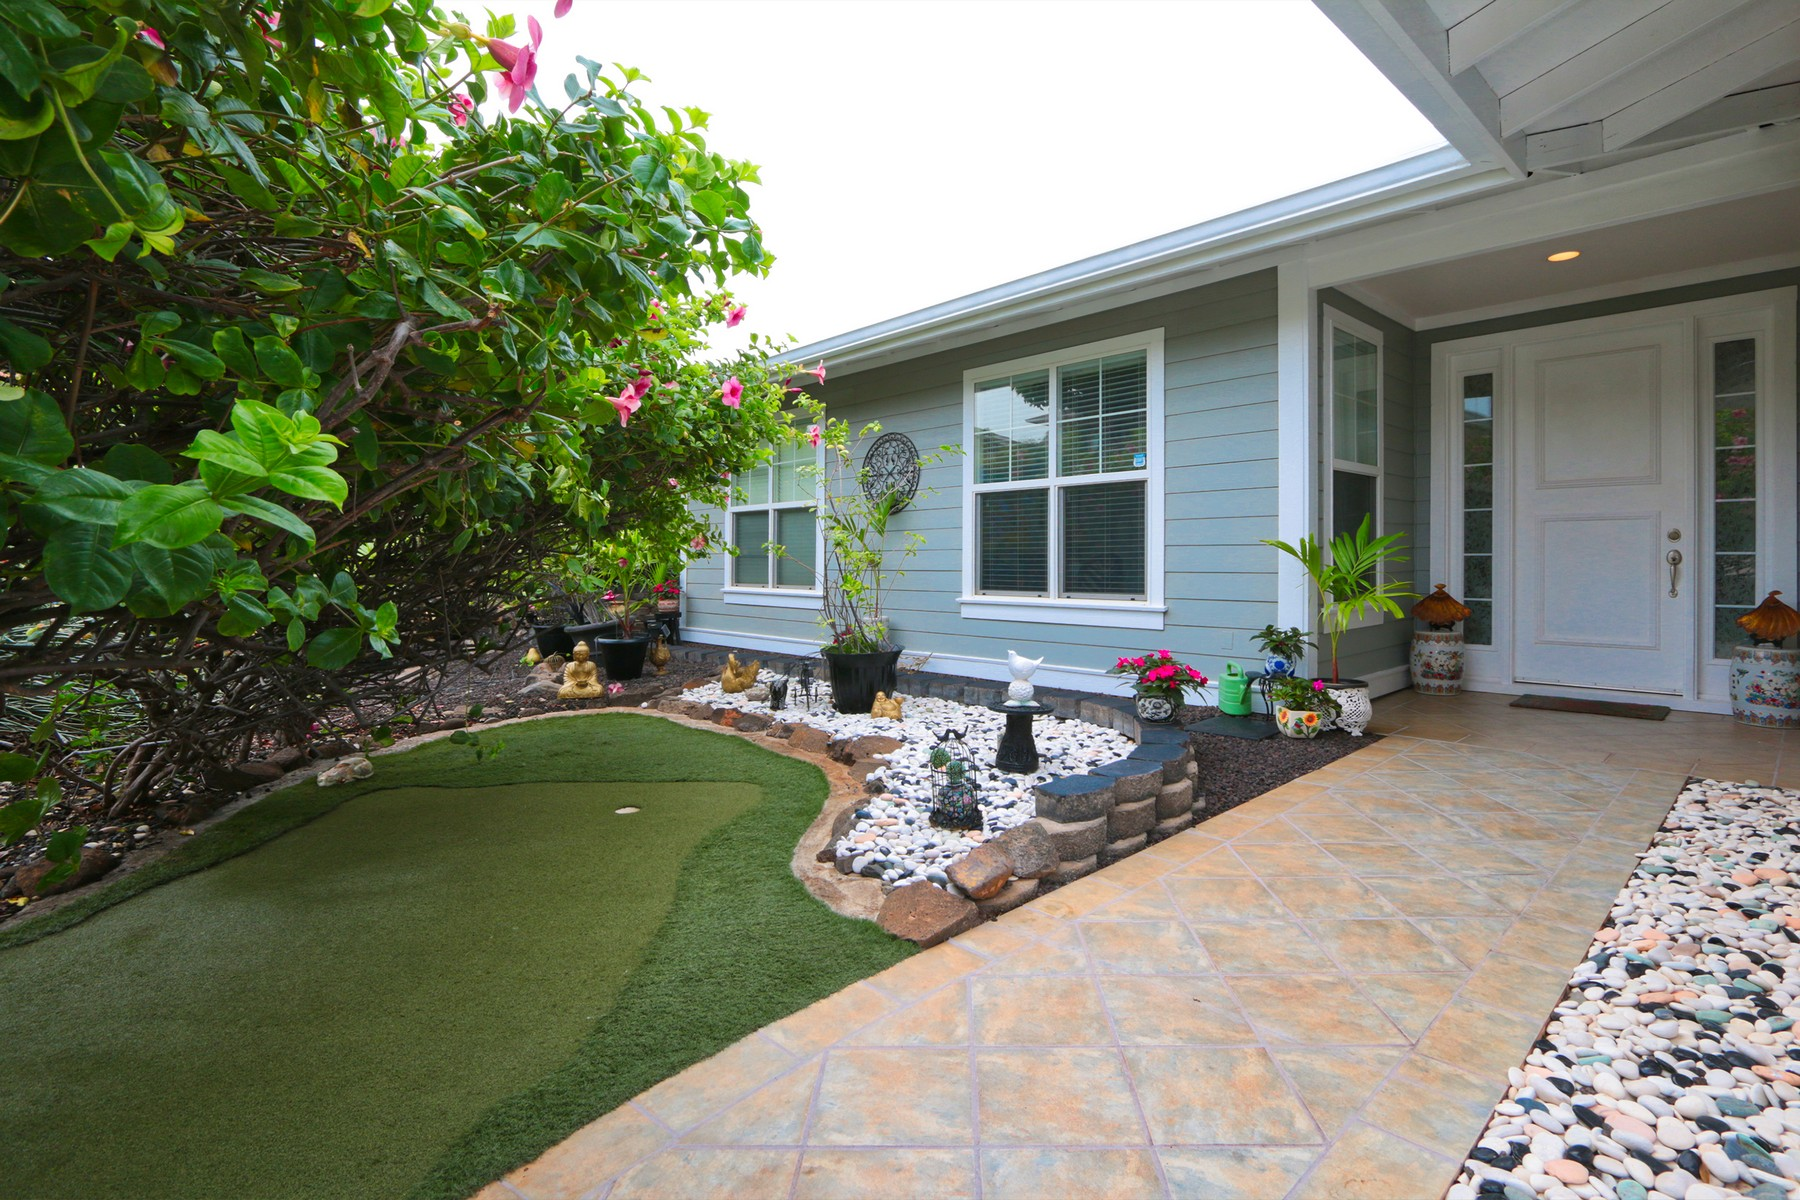 Maison unifamiliale pour l Vente à Friendly Neighborhood Great Location 111 Kulipuu Street Kihei, Hawaii, 96753 États-Unis